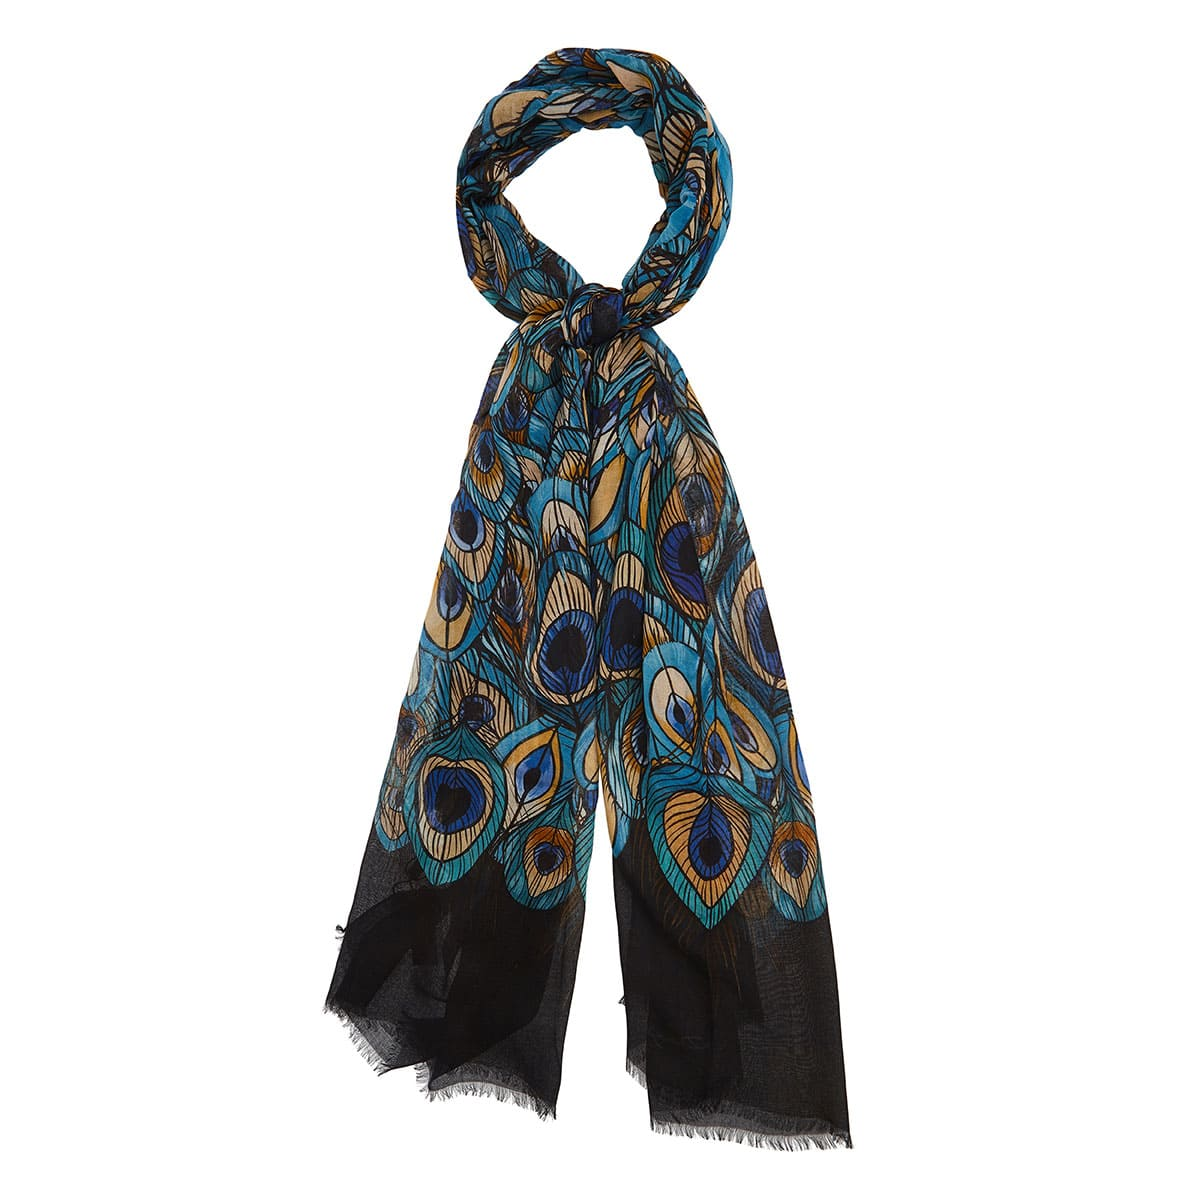 Feather printed modal scarf